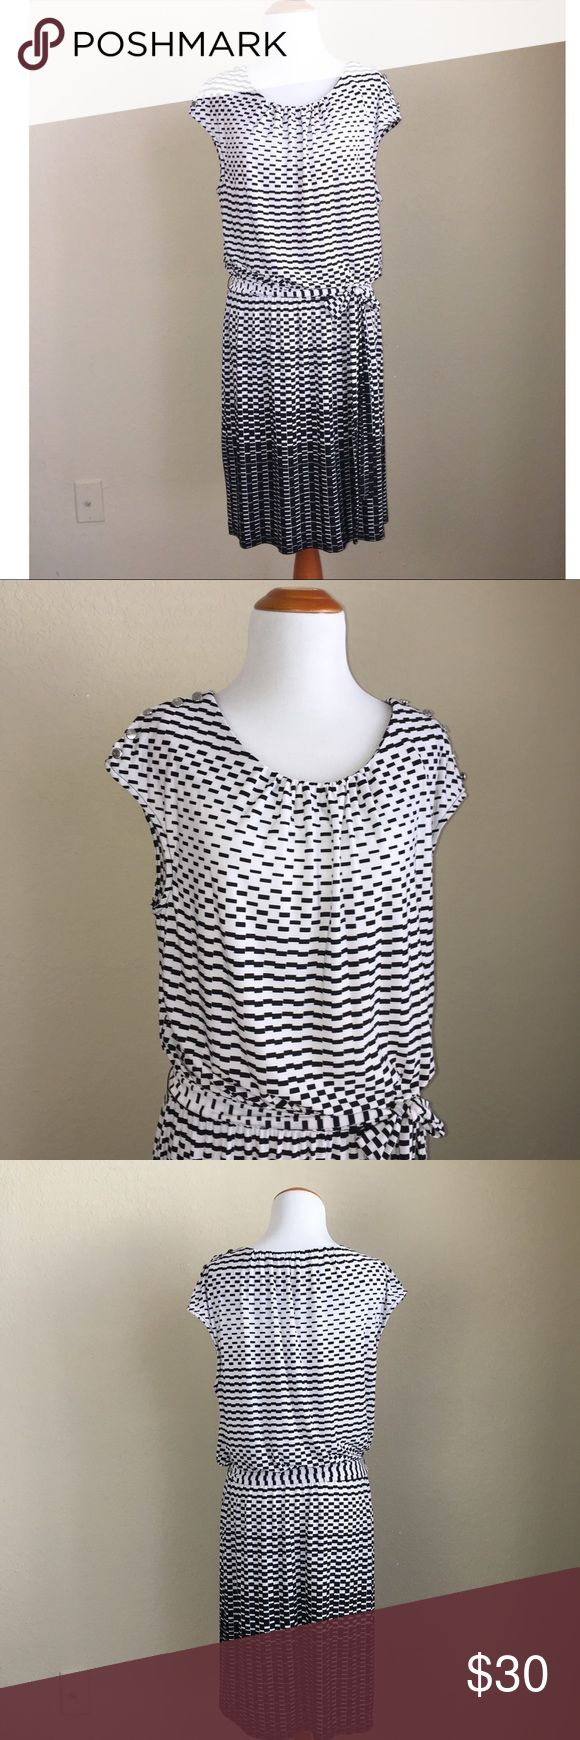 Black and white Guess Dress In excellent condition, Smoke Free Home 🏡 Guess Dresses